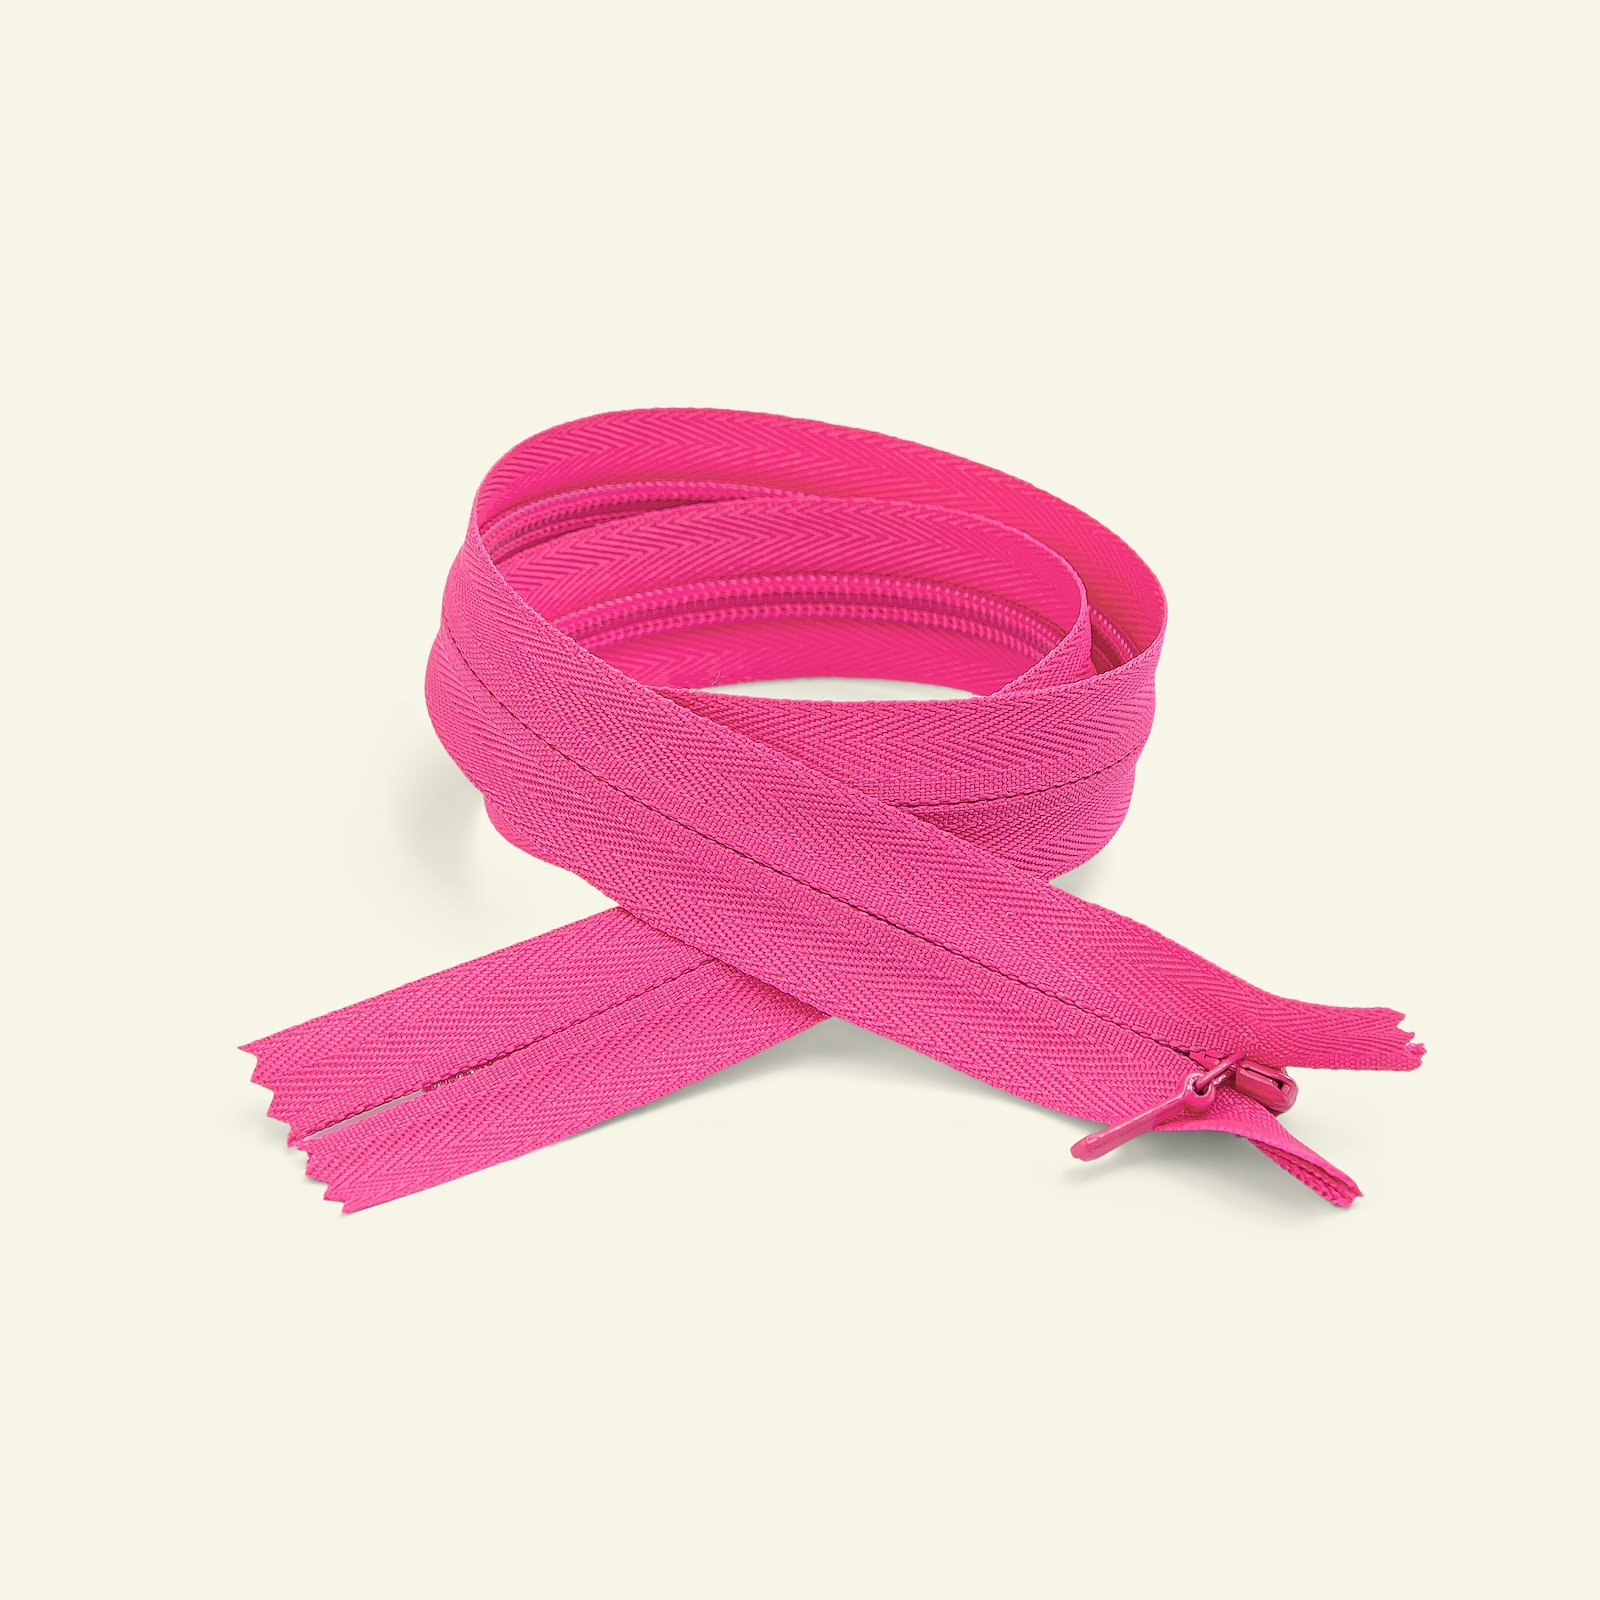 YKK zip 4mm invisible closed 35cm pink x40710_pack